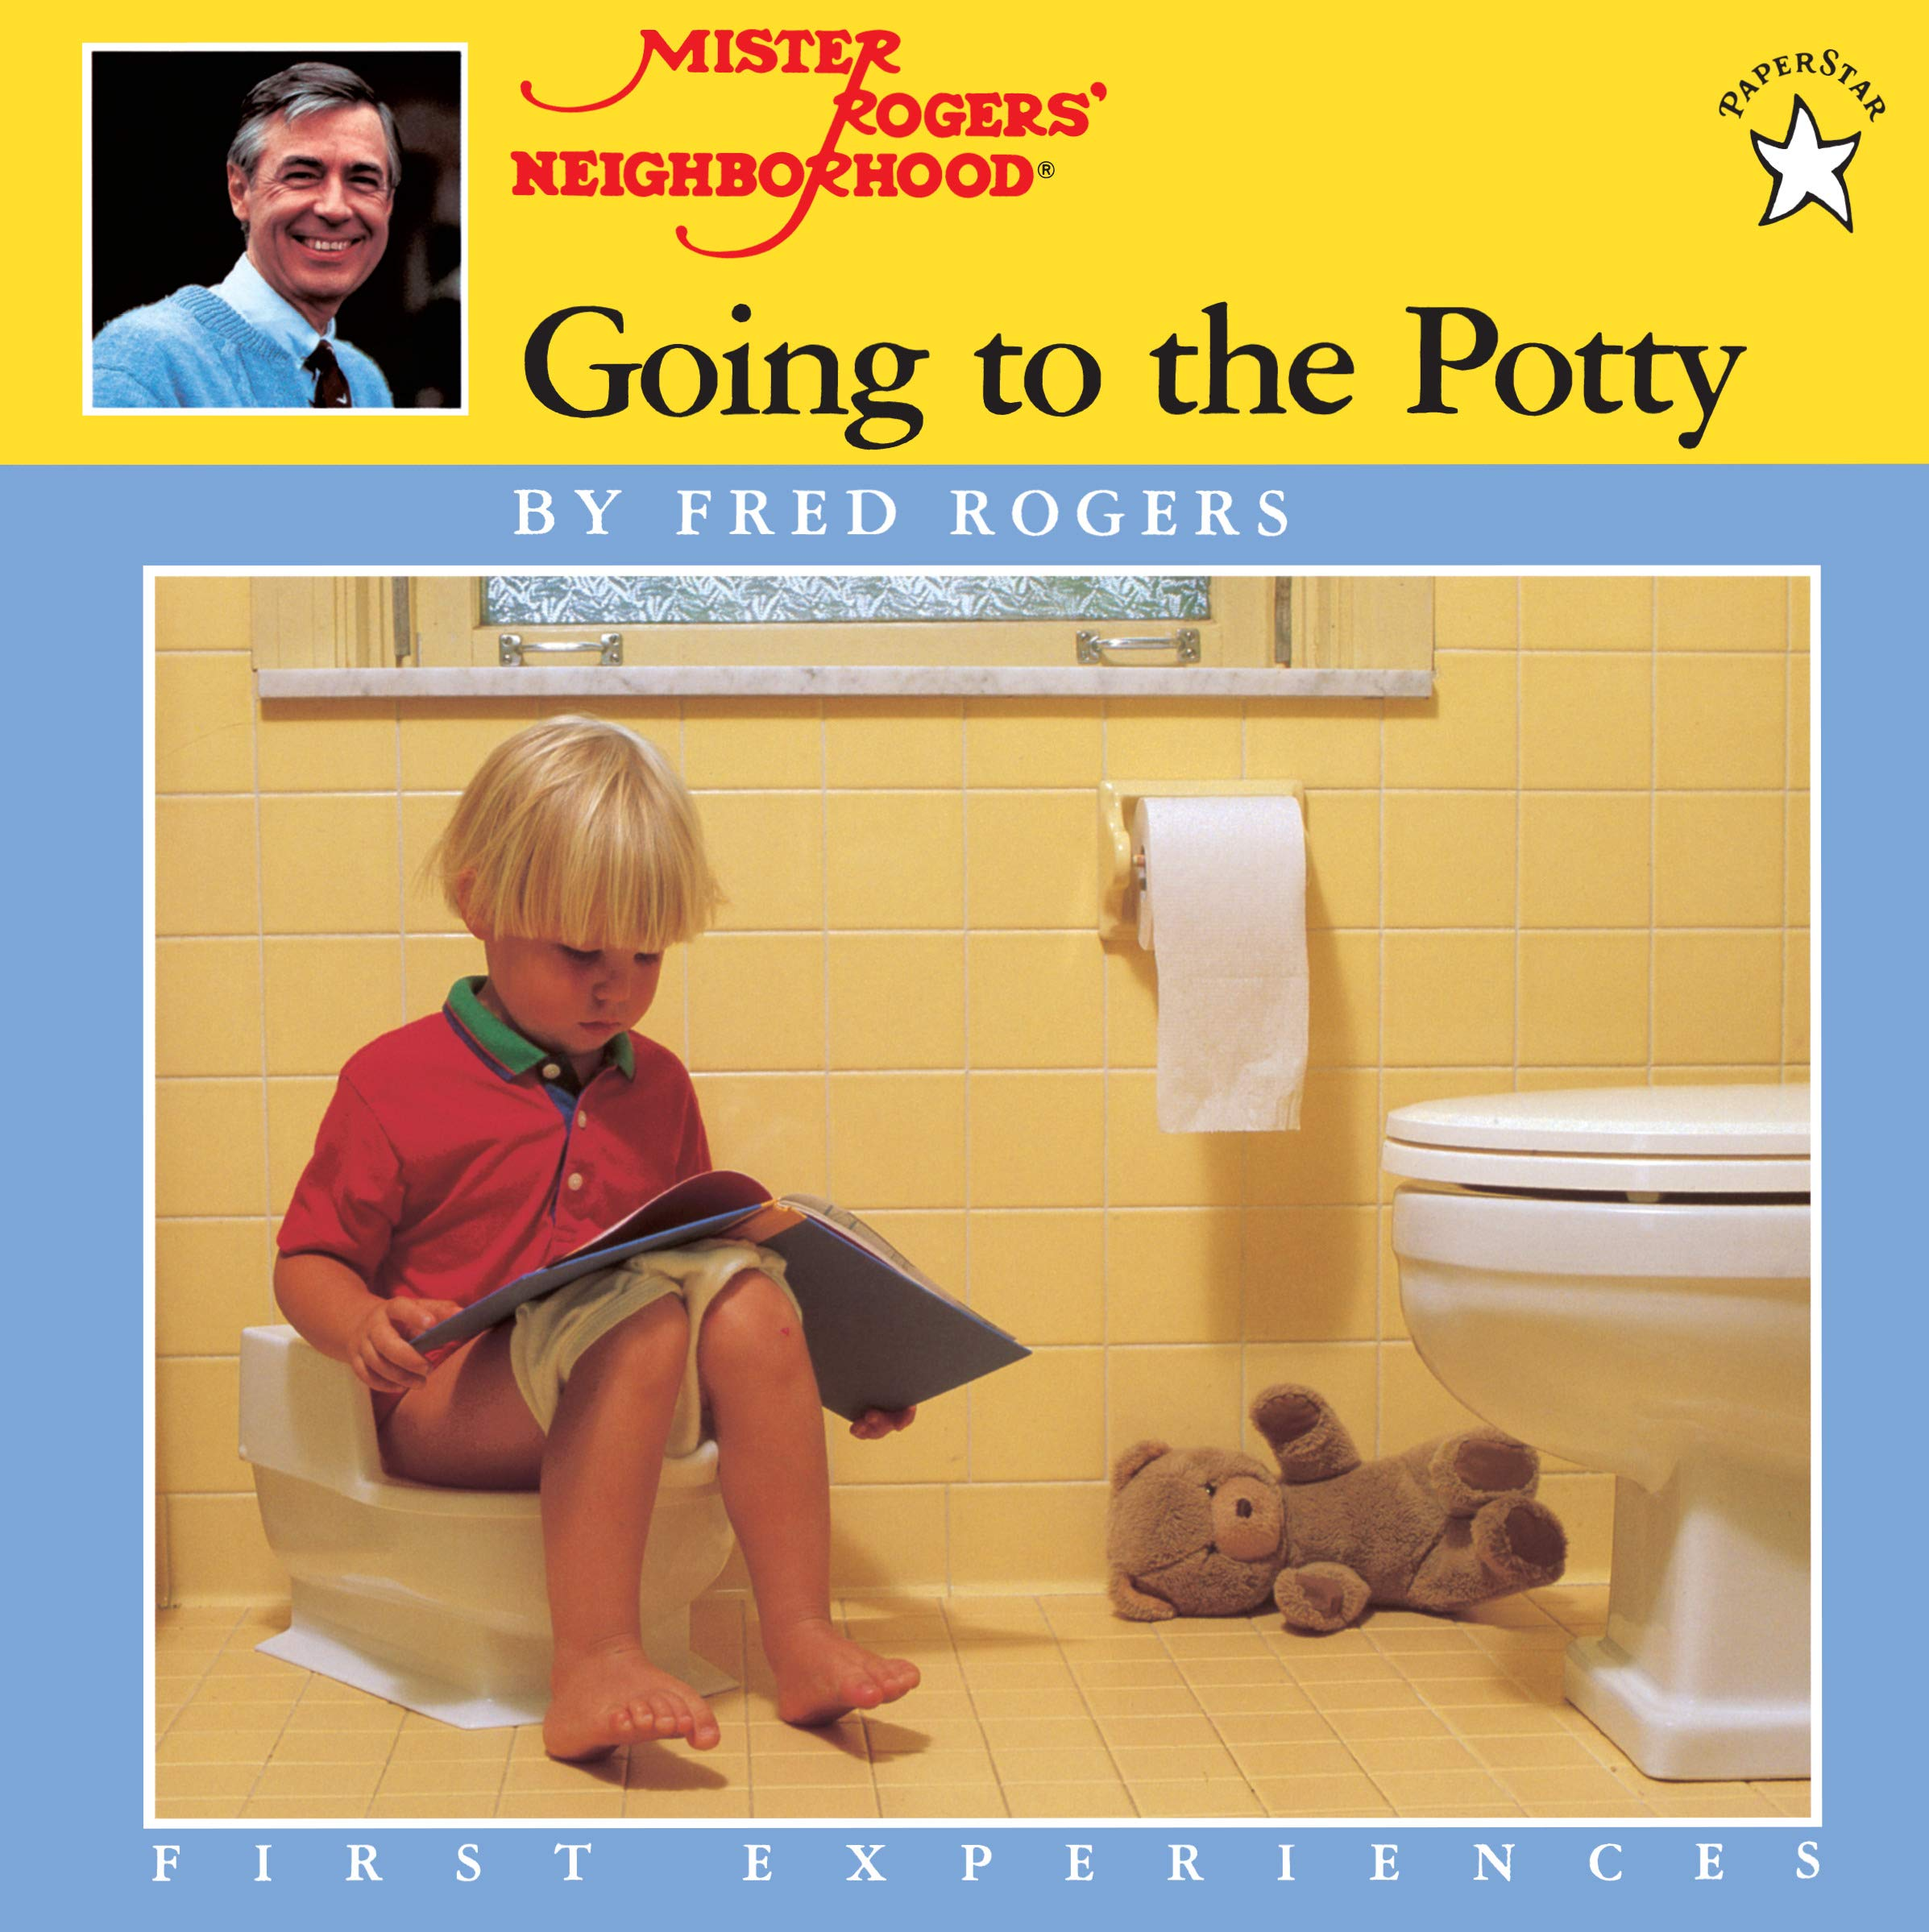 bef3aec623ff7 Going to the Potty (Mr. Rogers)  Fred Rogers  9780698115750  Amazon.com   Books